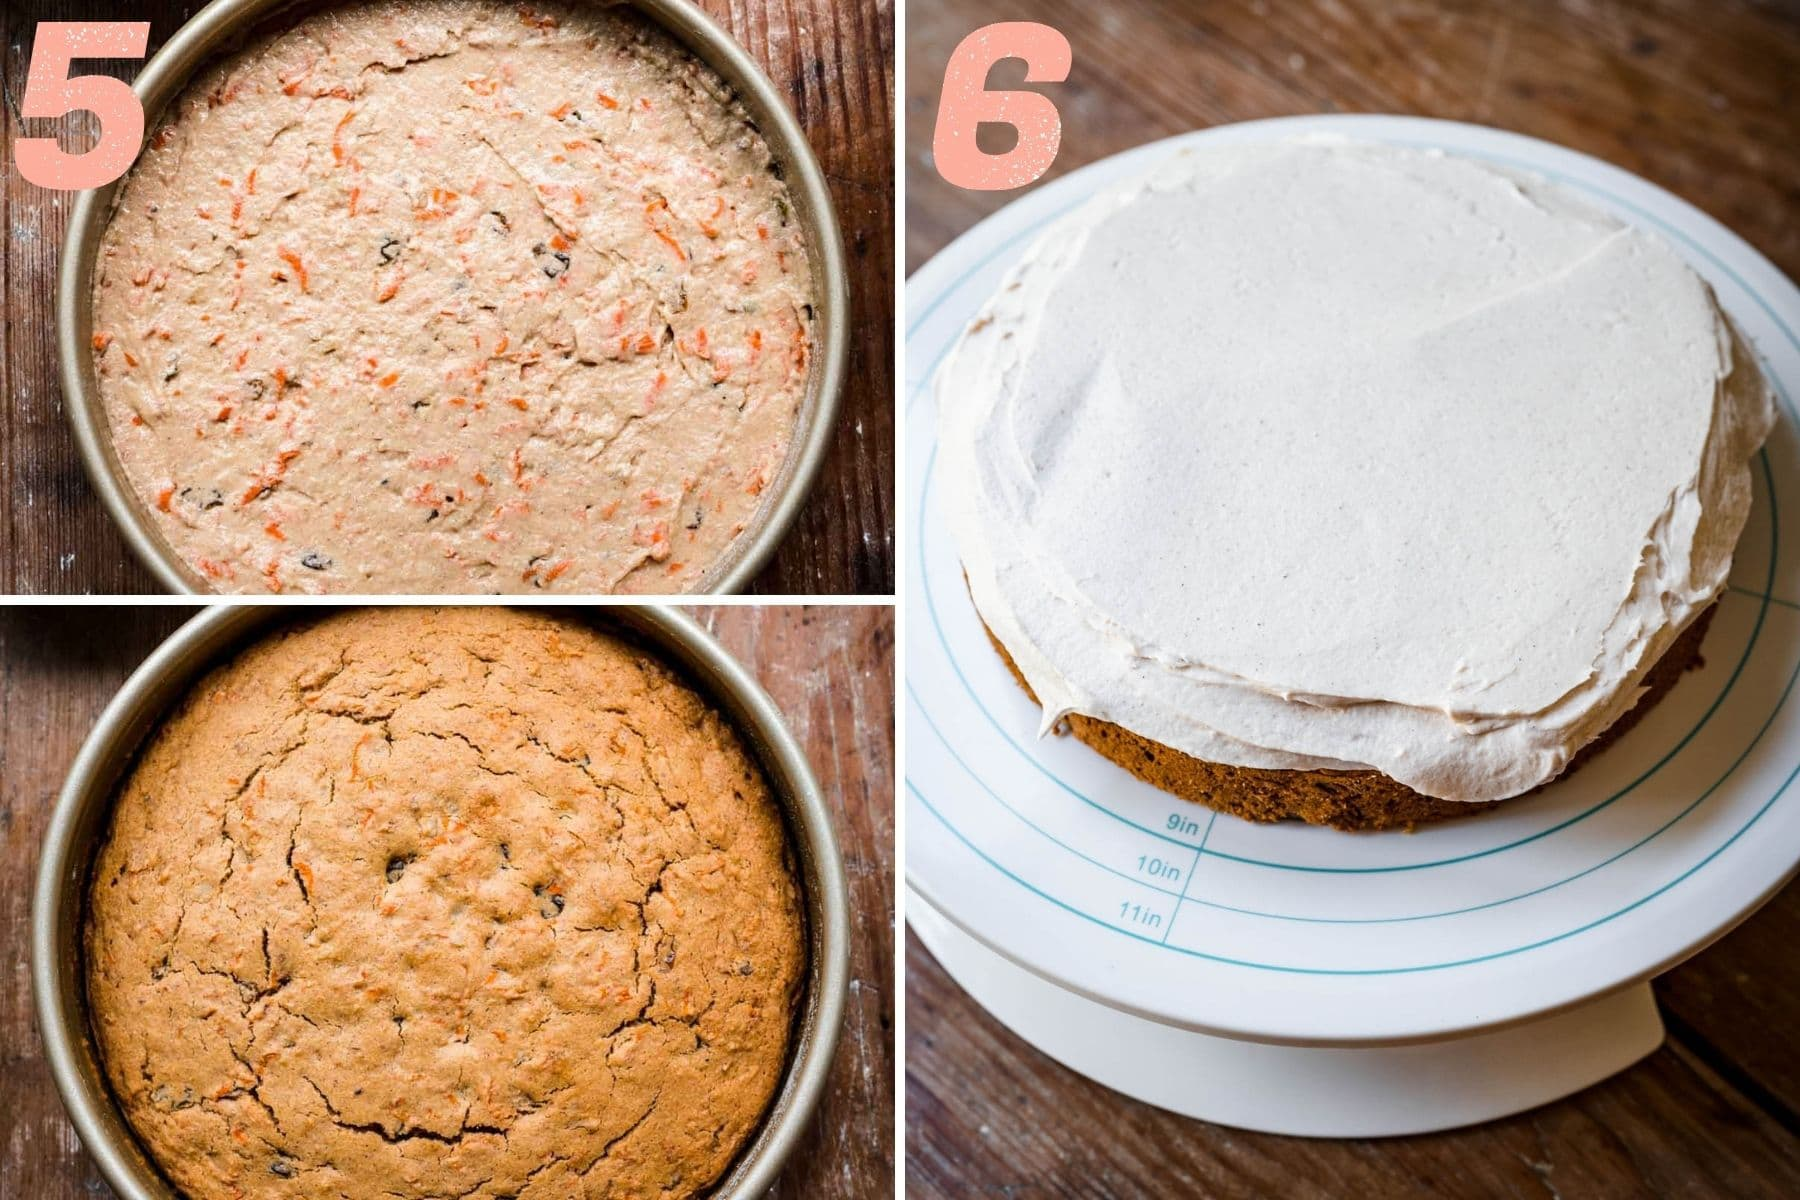 On the left: carrot cake before and after being baked. On the right: carrot cake being frosted.